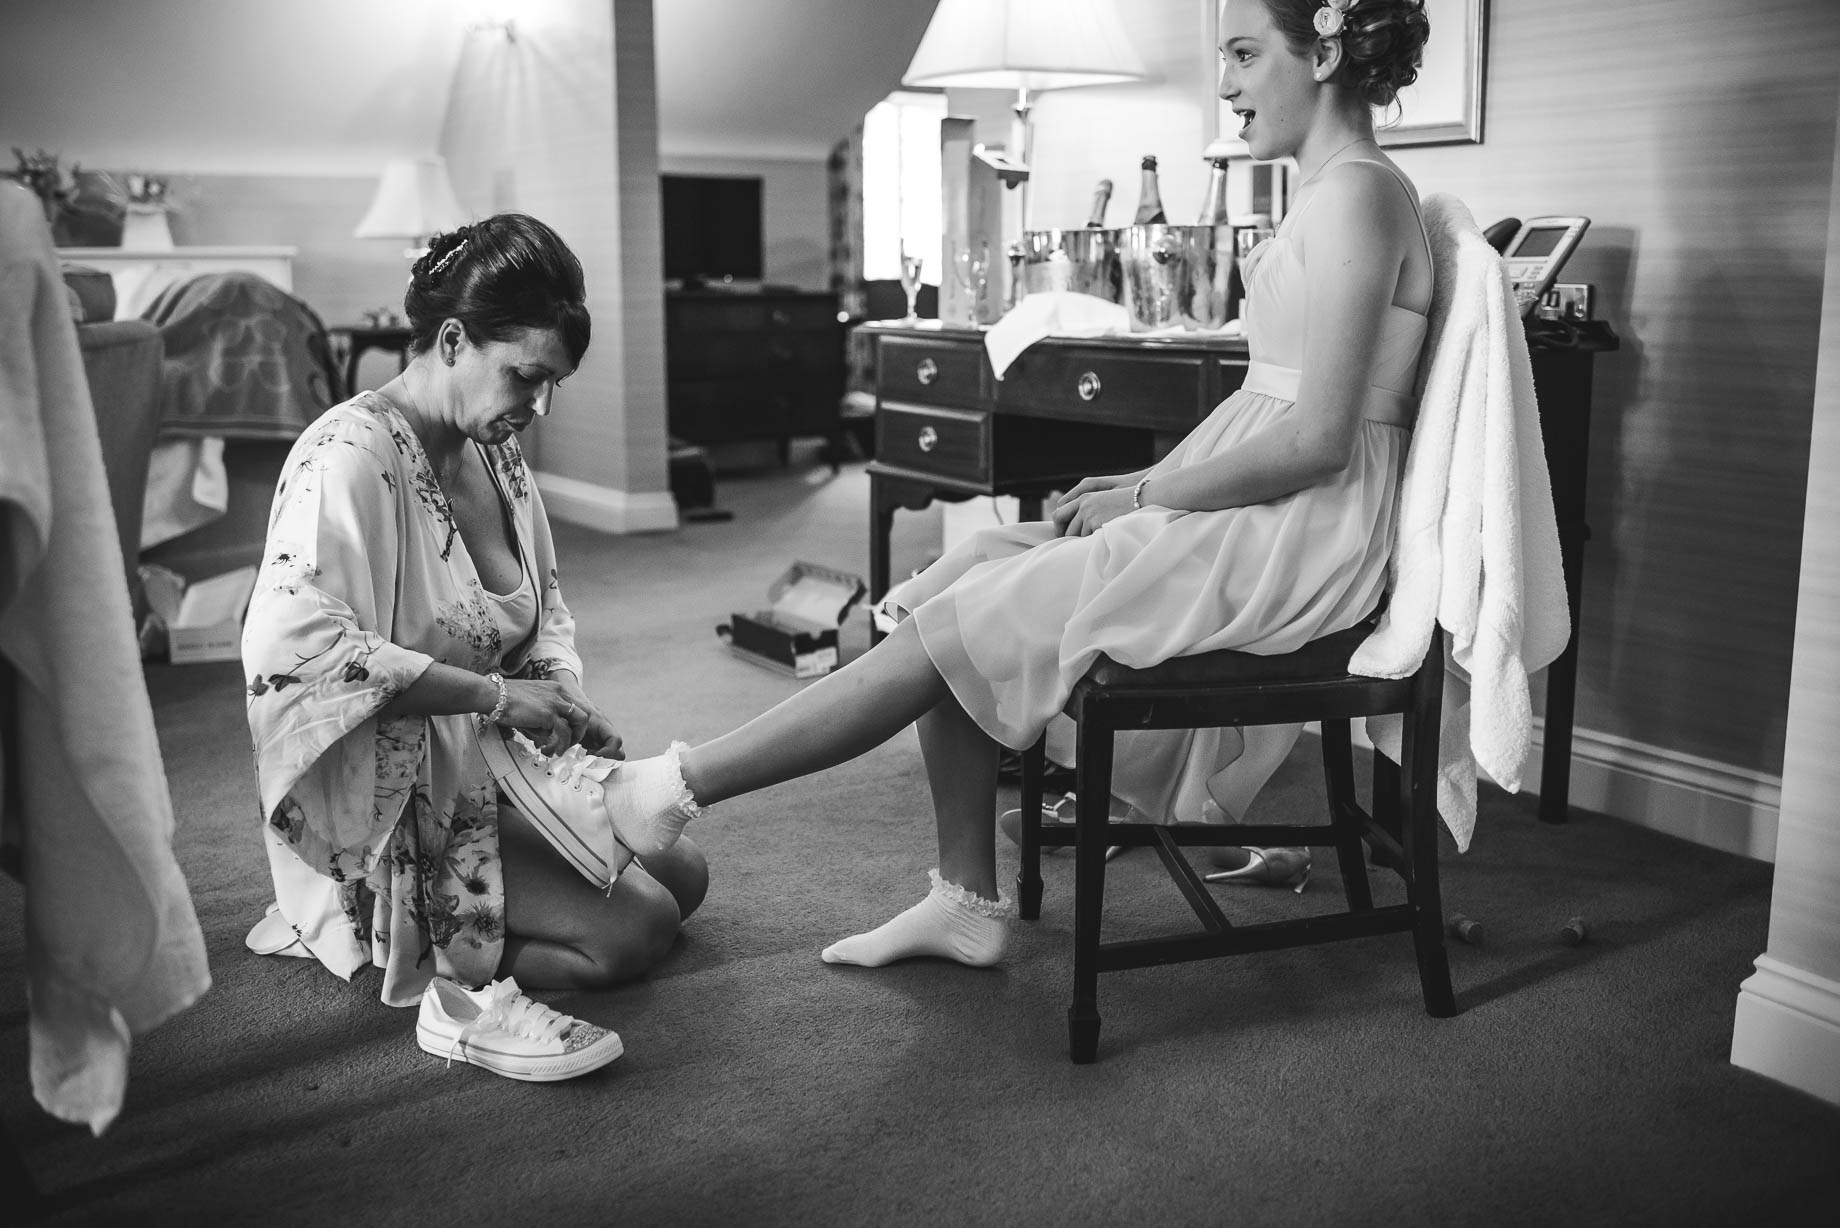 Luton Hoo wedding photography by Guy Collier Photography - Lauren and Gem (40 of 178)